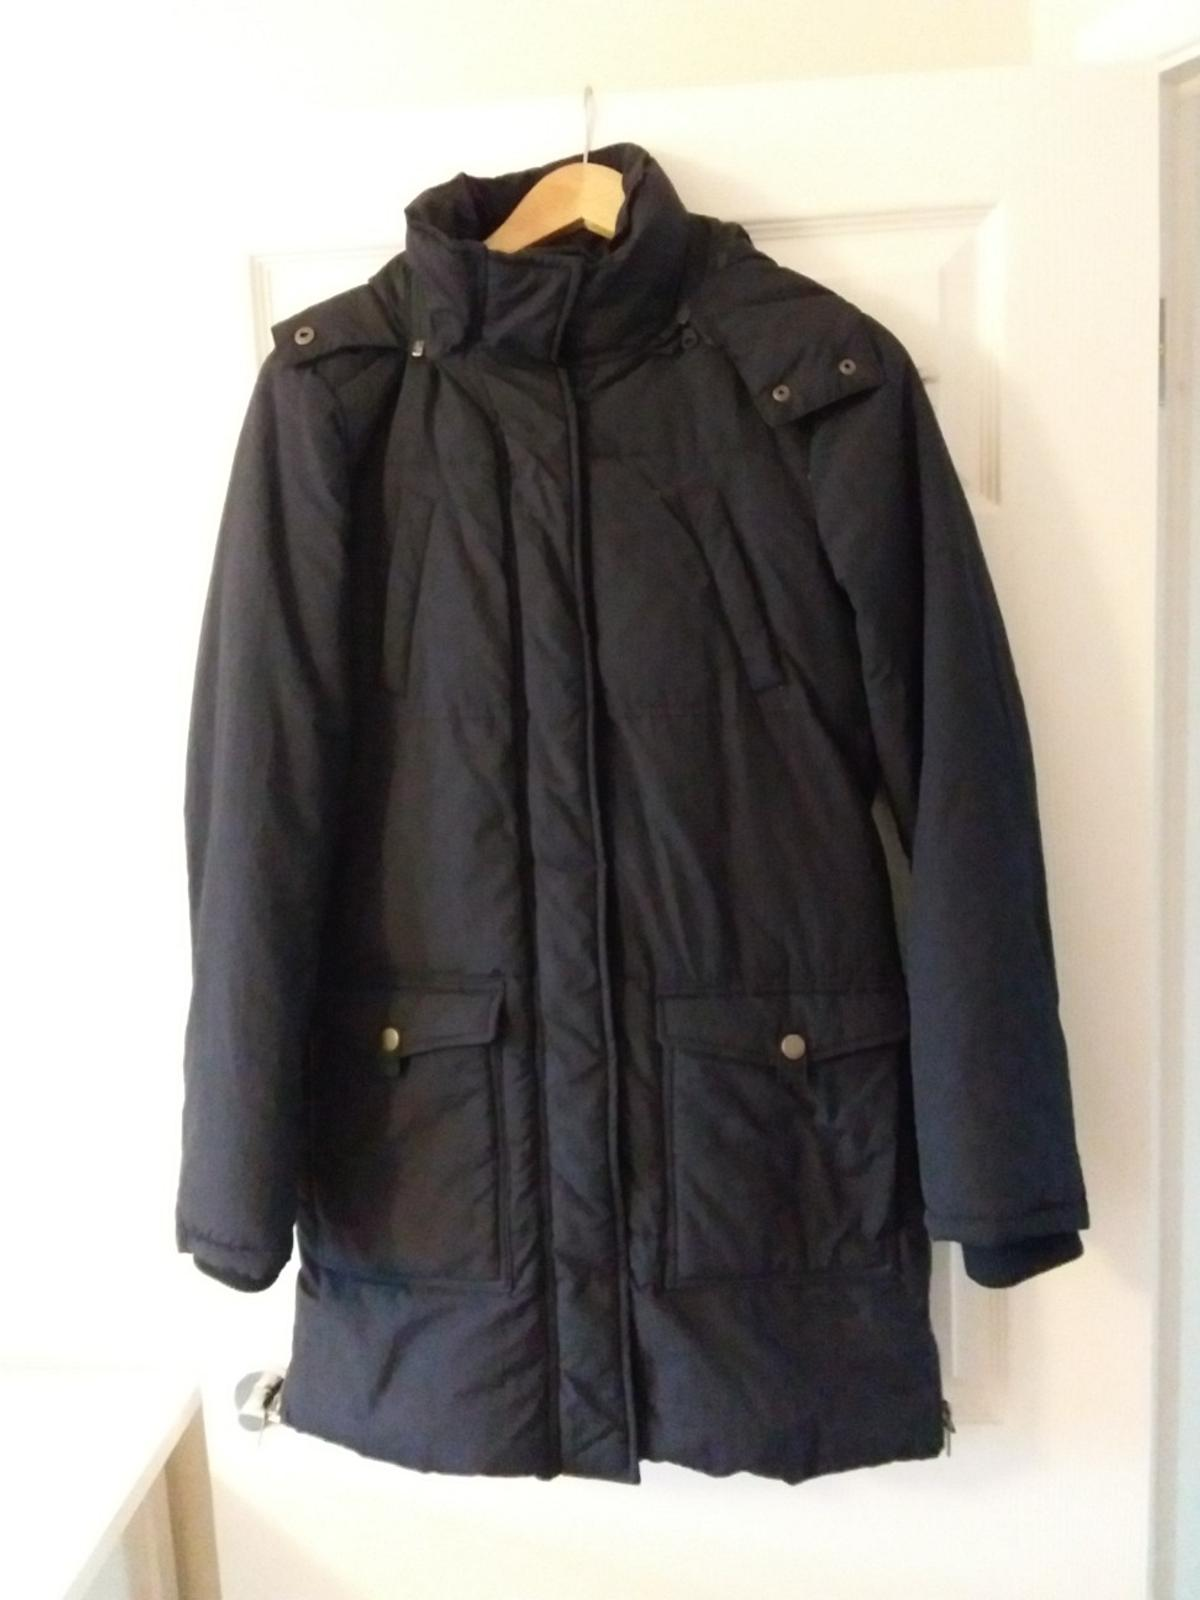 Winter coat in dark blue size 38 EU Collection in Reading with cash payment